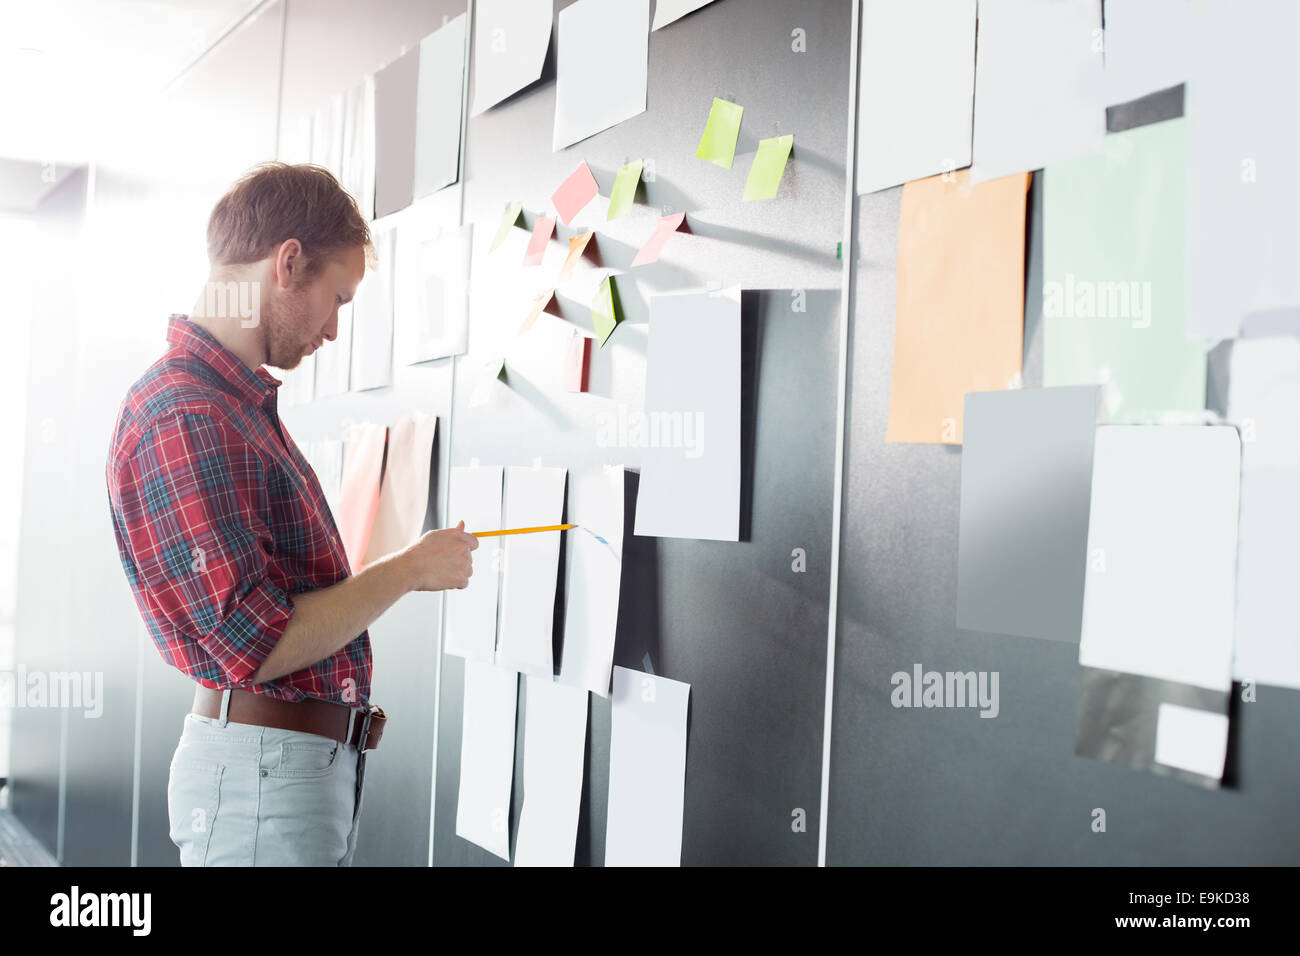 Businessman analyzing documents on wall at creative office - Stock Image